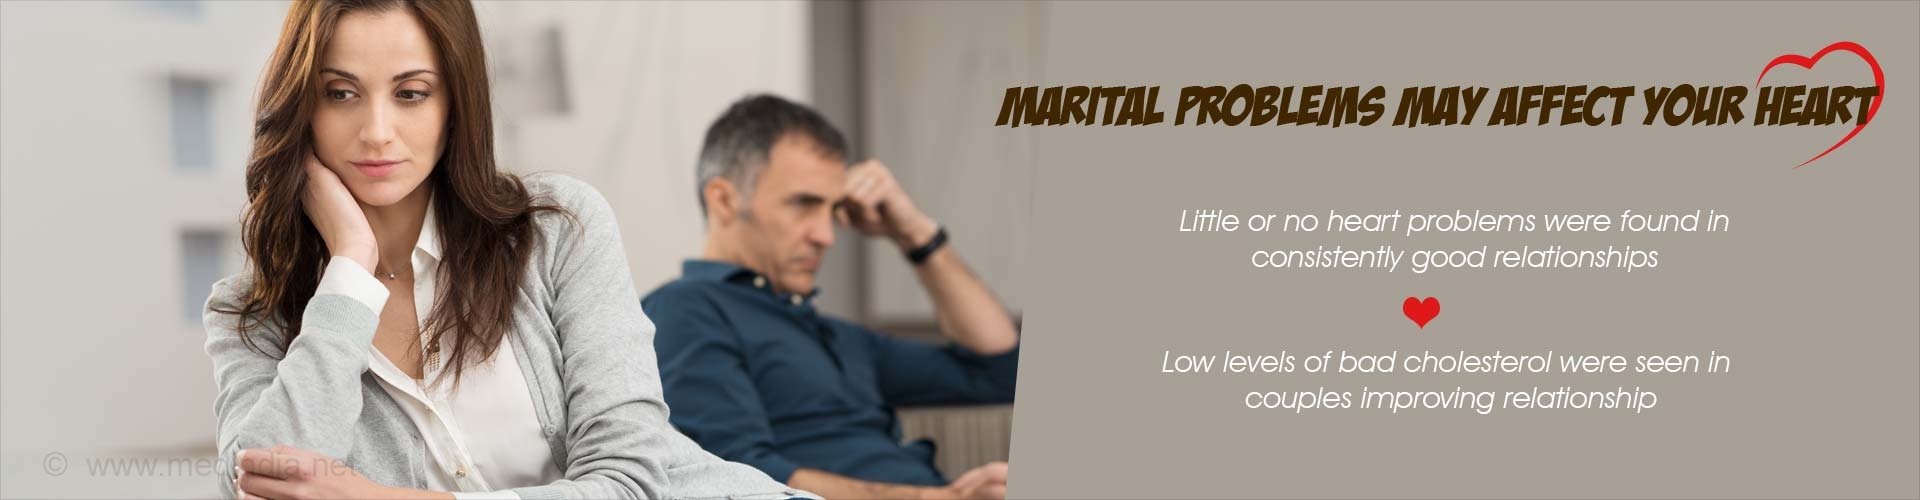 marital problems may affect your heart - little or no heart problems were found in consistently good relationships - low levels of bad cholesterol were seen in couples improving relationship